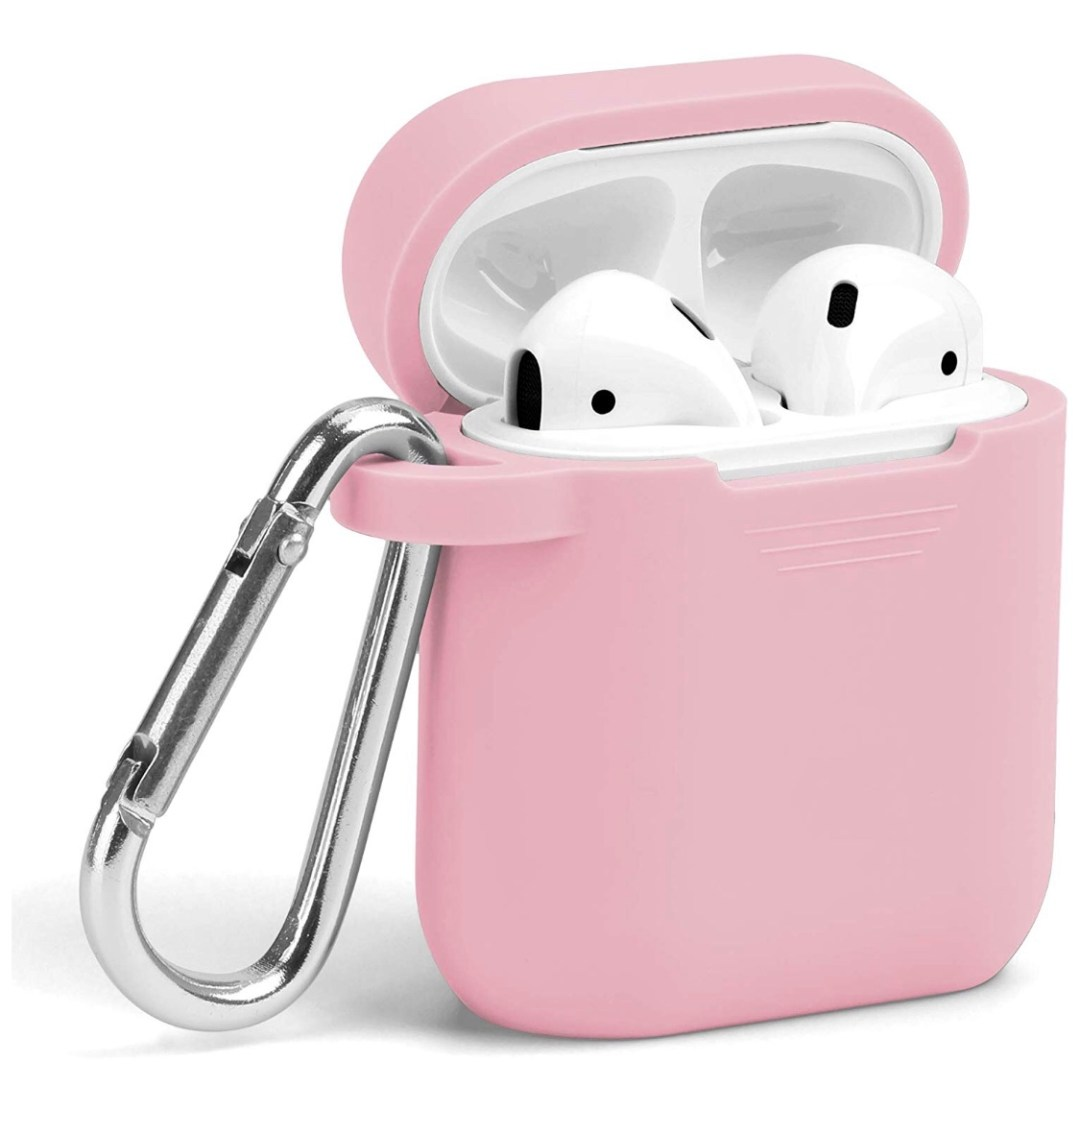 Cordless Headphones: Apple AirPods